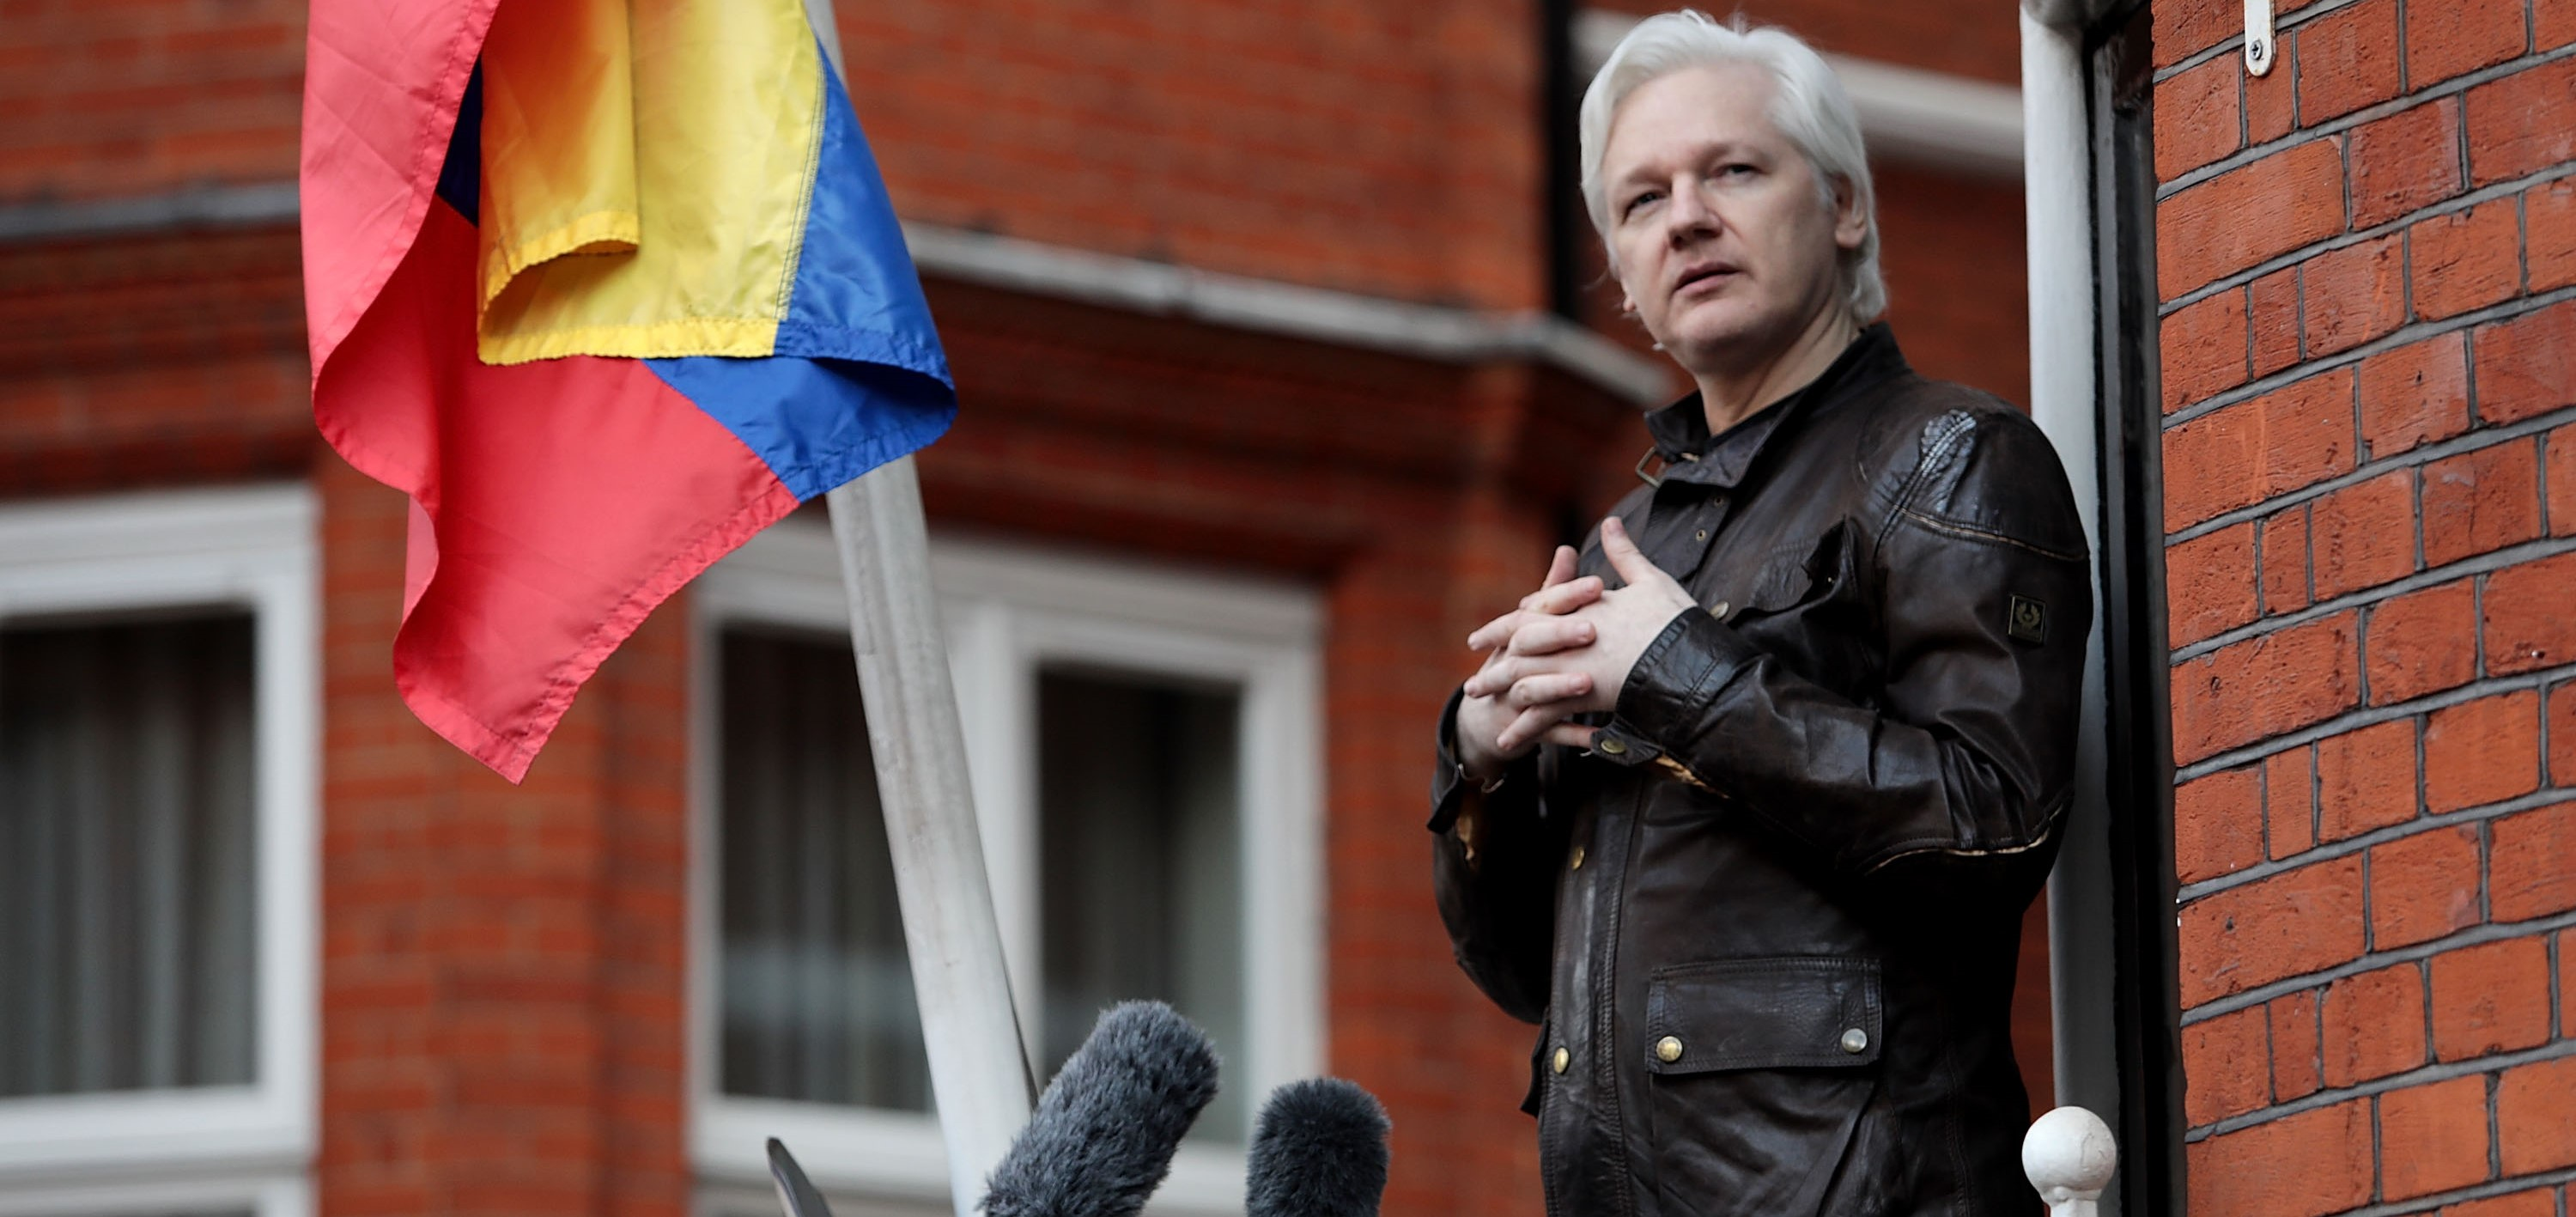 Julian Assange speaking outside the Ecuadorian Embassy in the UK, May 2017 (Photo: Jack Taylor/Getty Images)